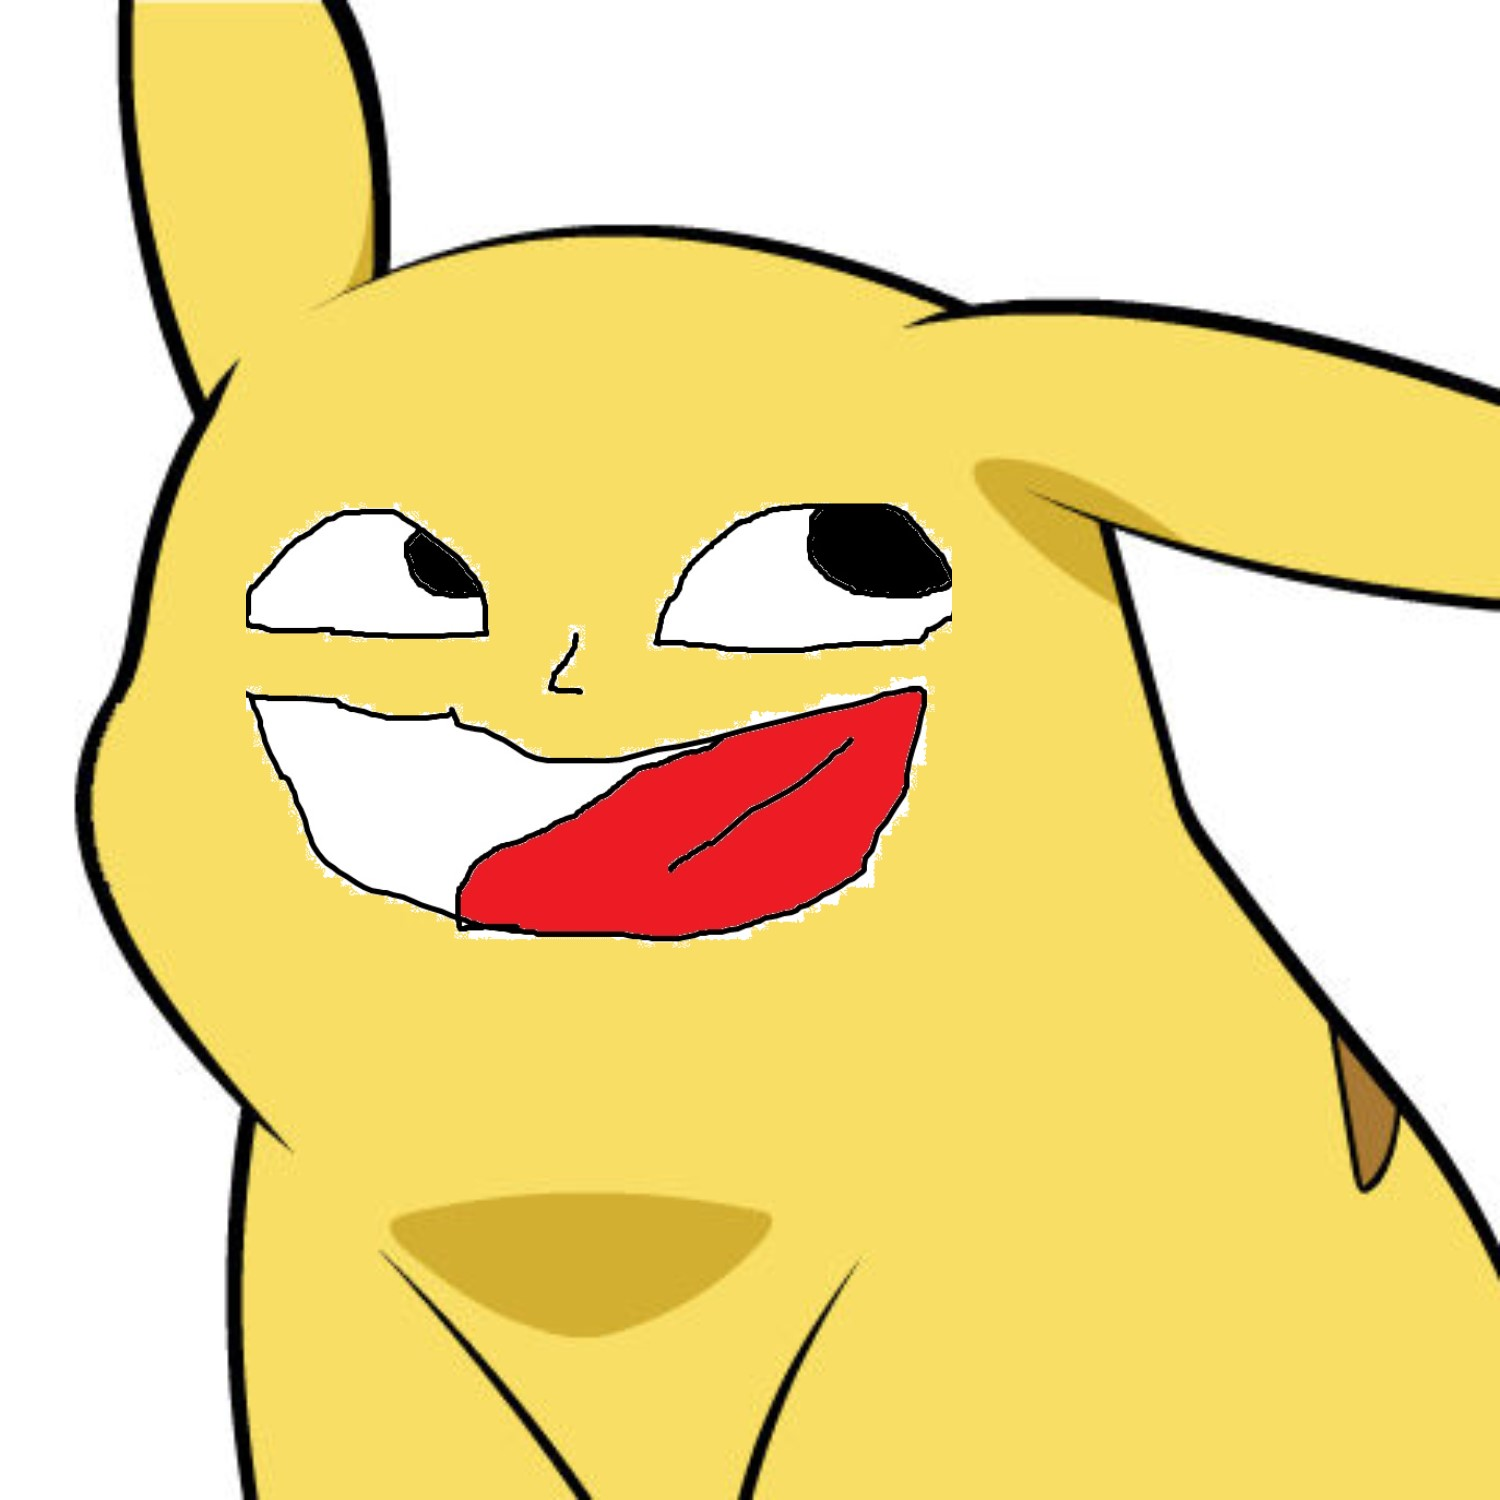 Pikachu Crappy Face I Made The Other Thay This Give Pikachu A